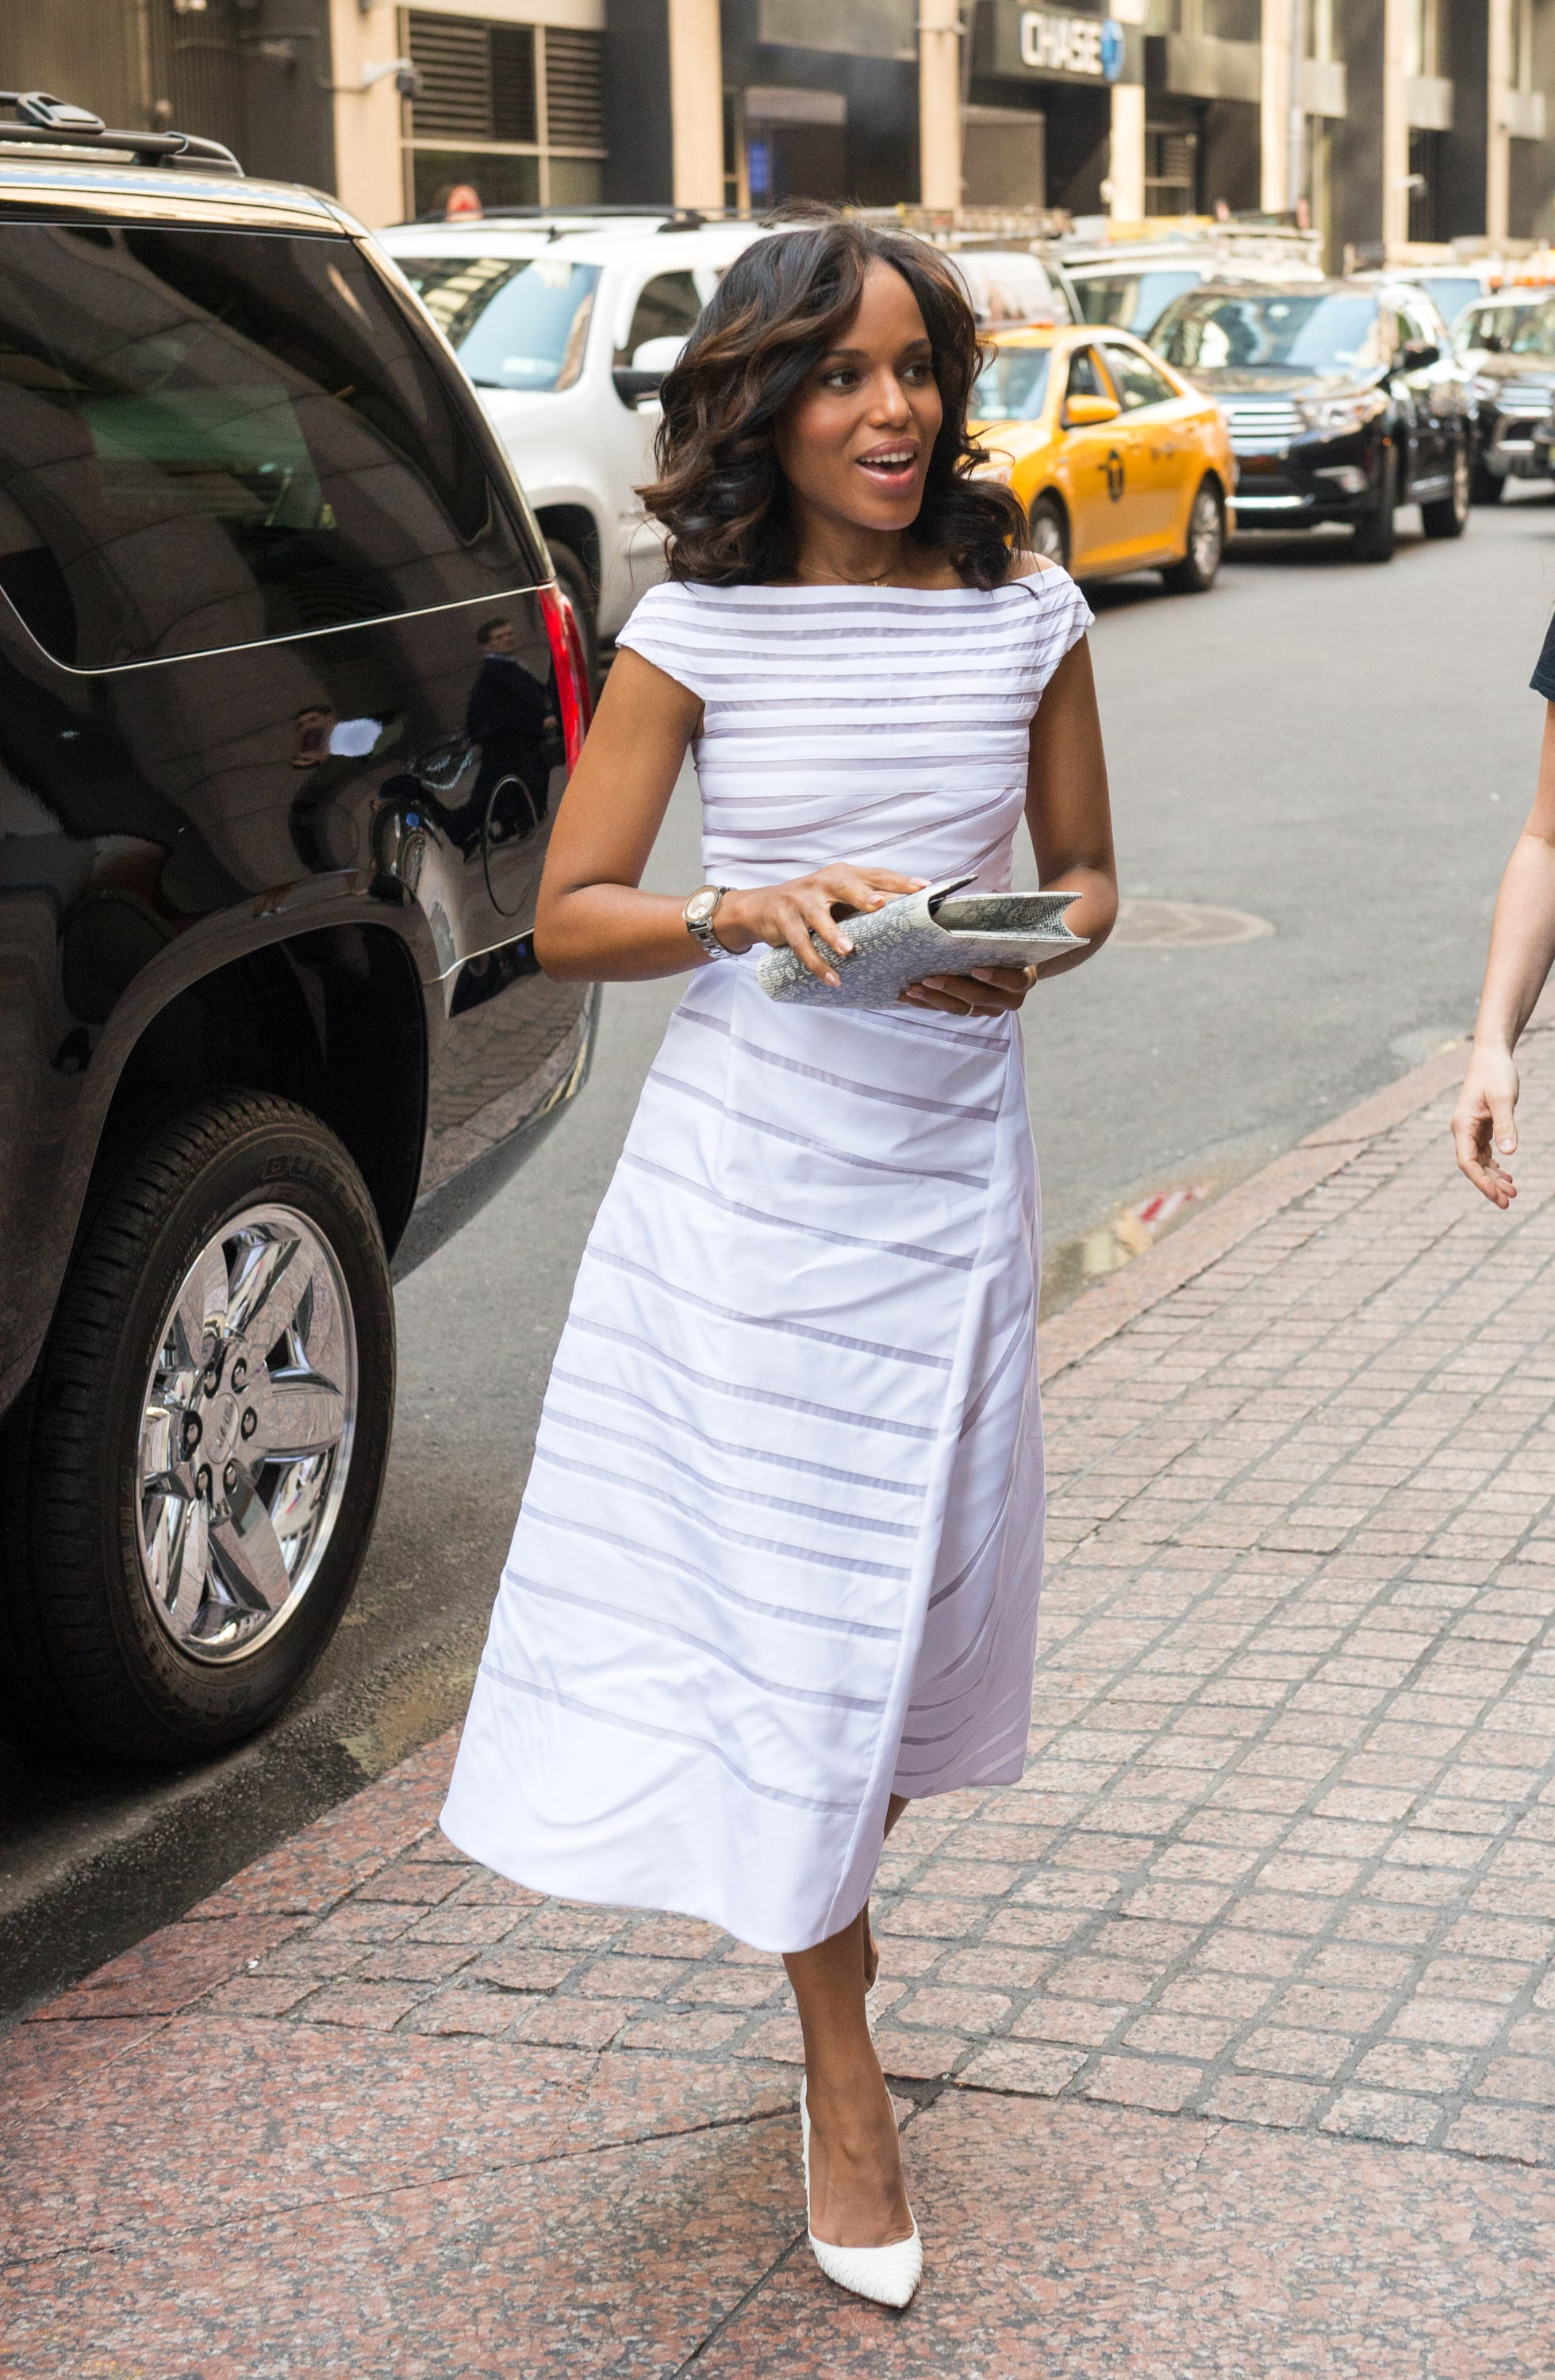 Washington was spotted at The Paley Center for Media in early October, wearing a whimsical white dress.